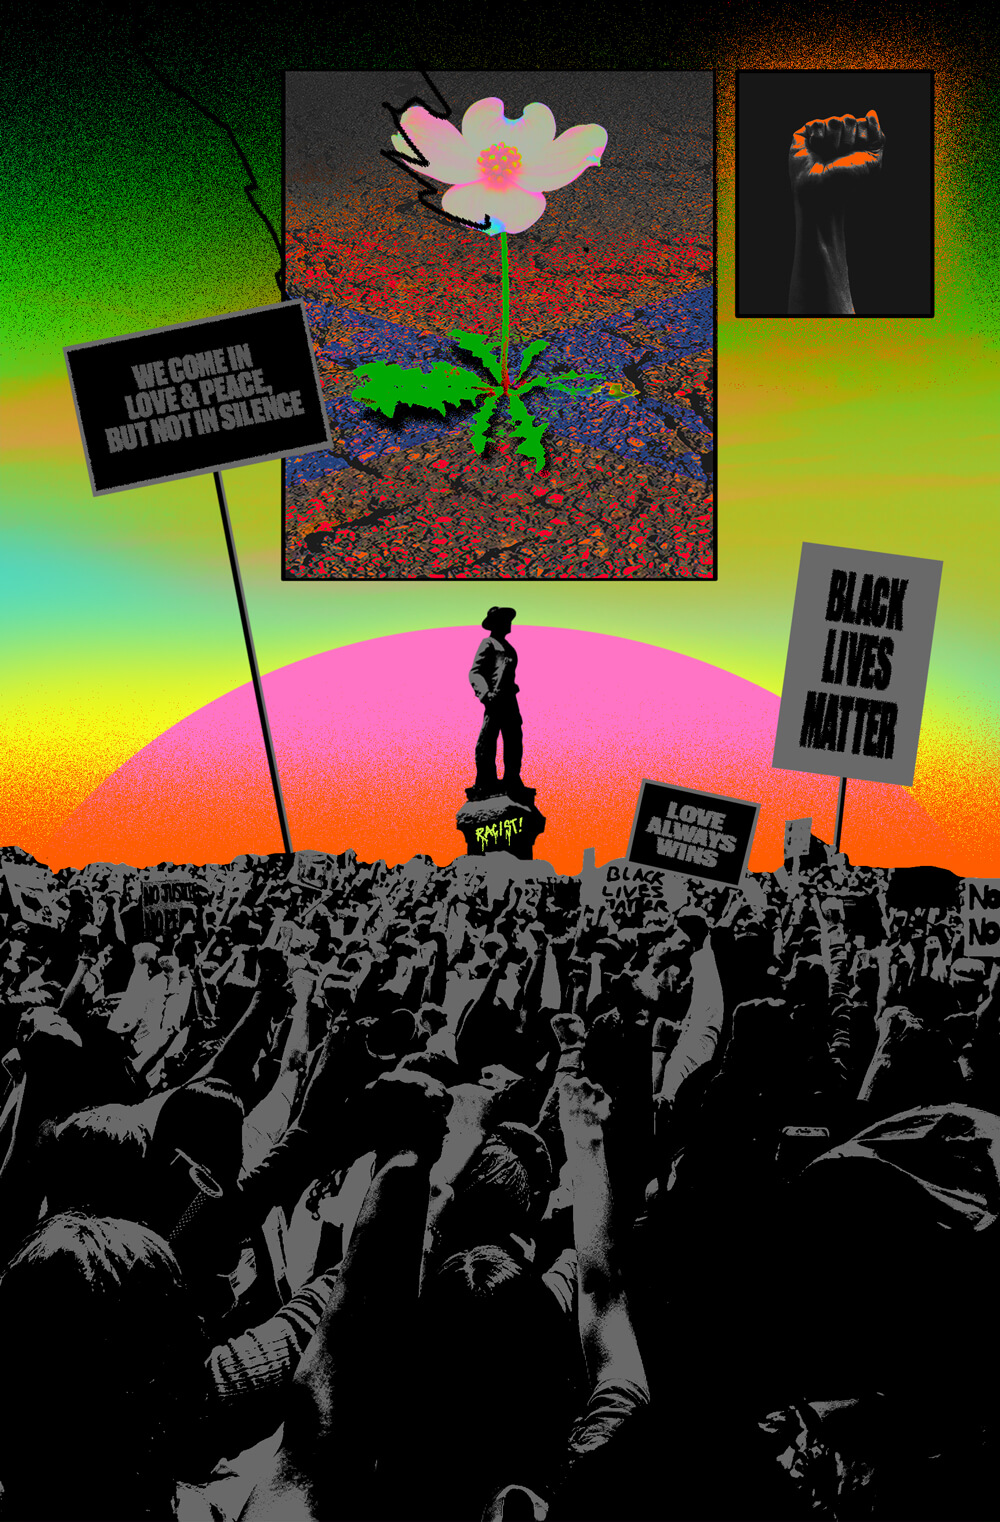 "Protestors holding signs that read ""BLACK LIVES MATTER,"" ""LOVE ALWAYS WINS,"" and ""WE COME IN LOVE & PEACE BUT NOT IN SILENCE"" flock around a Confederate statue. An intensely saturated, Pop Art-style photograph of a flower is superimposed above the statue, as well as a photograph of a black power fist."